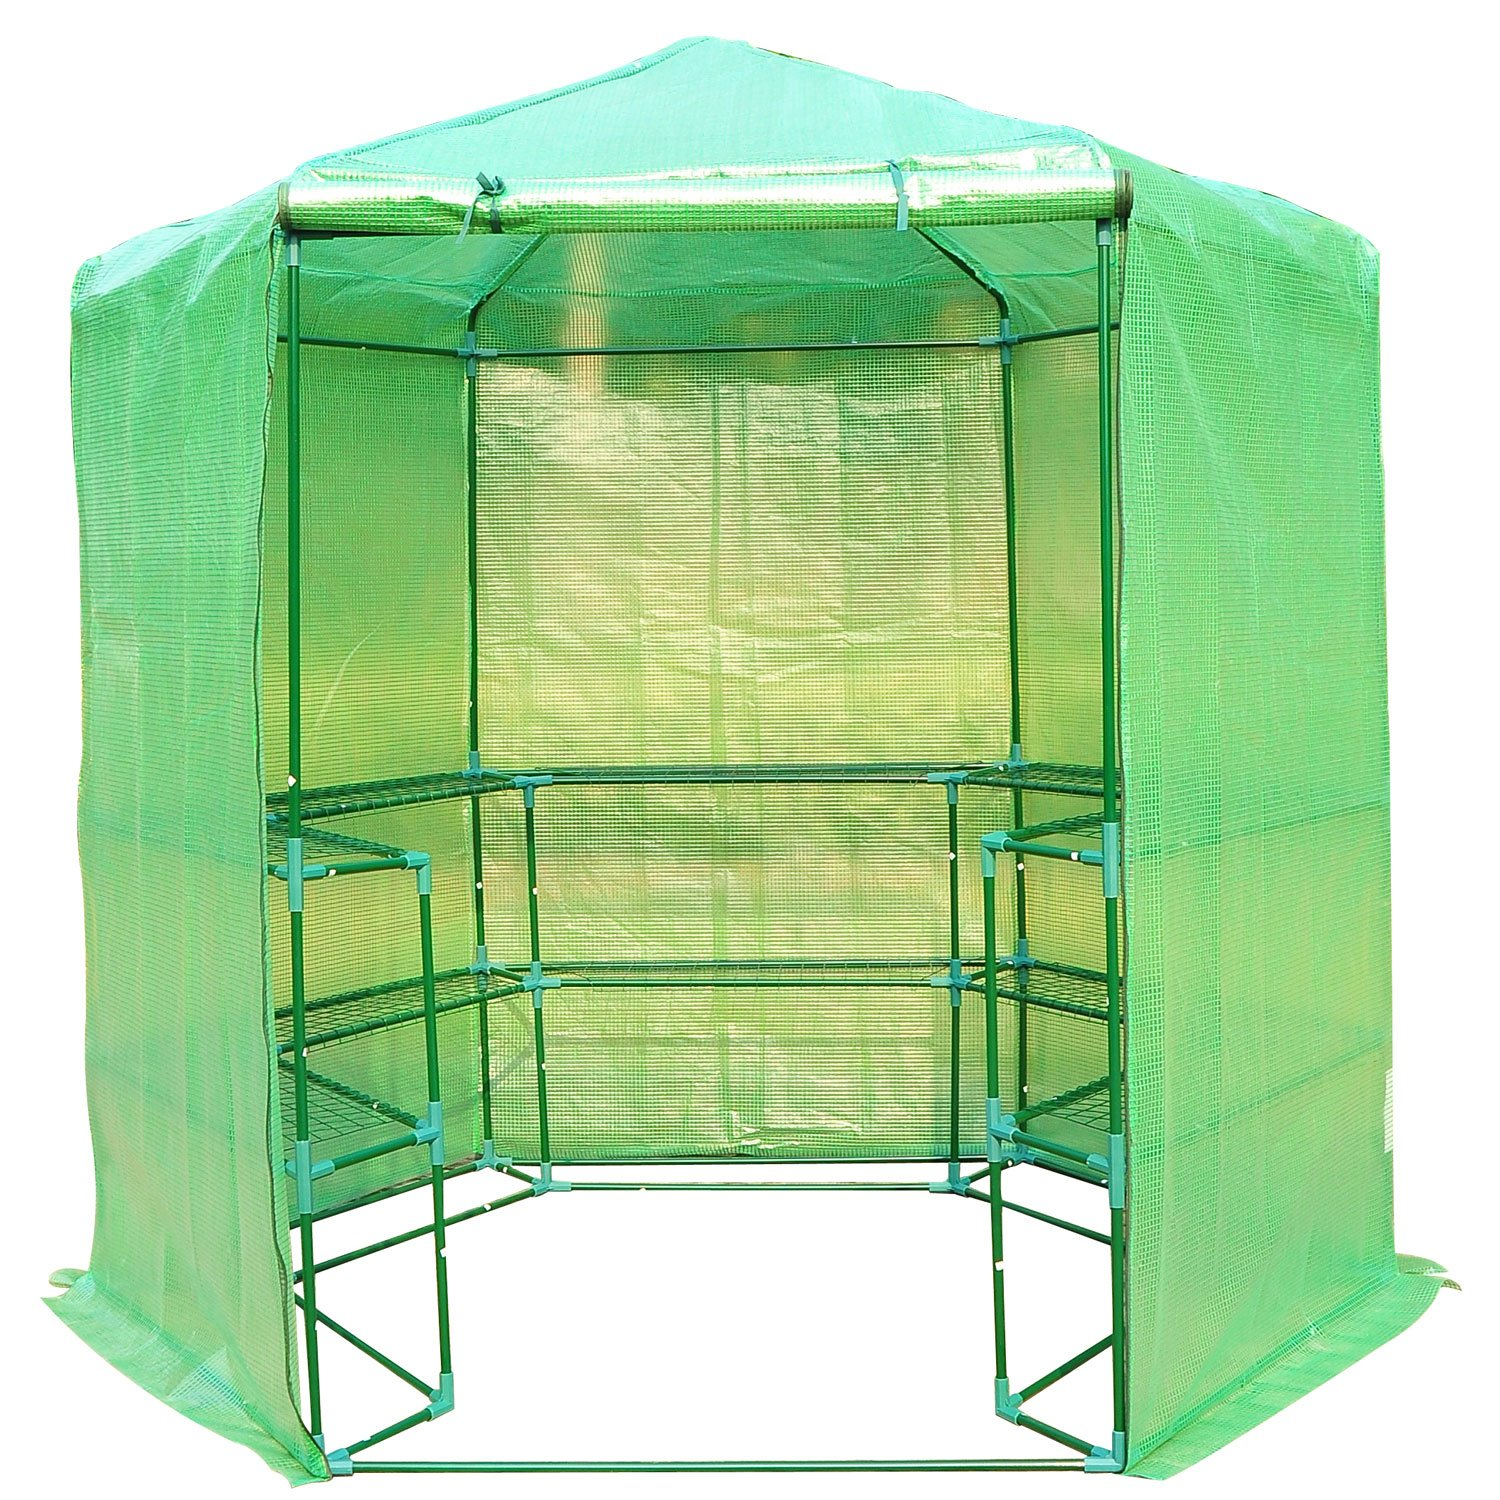 Outsunny Portable 3-Tier Shelf Hexagonal Walk In Greenhouse, 7.5-Feet by Outsunny